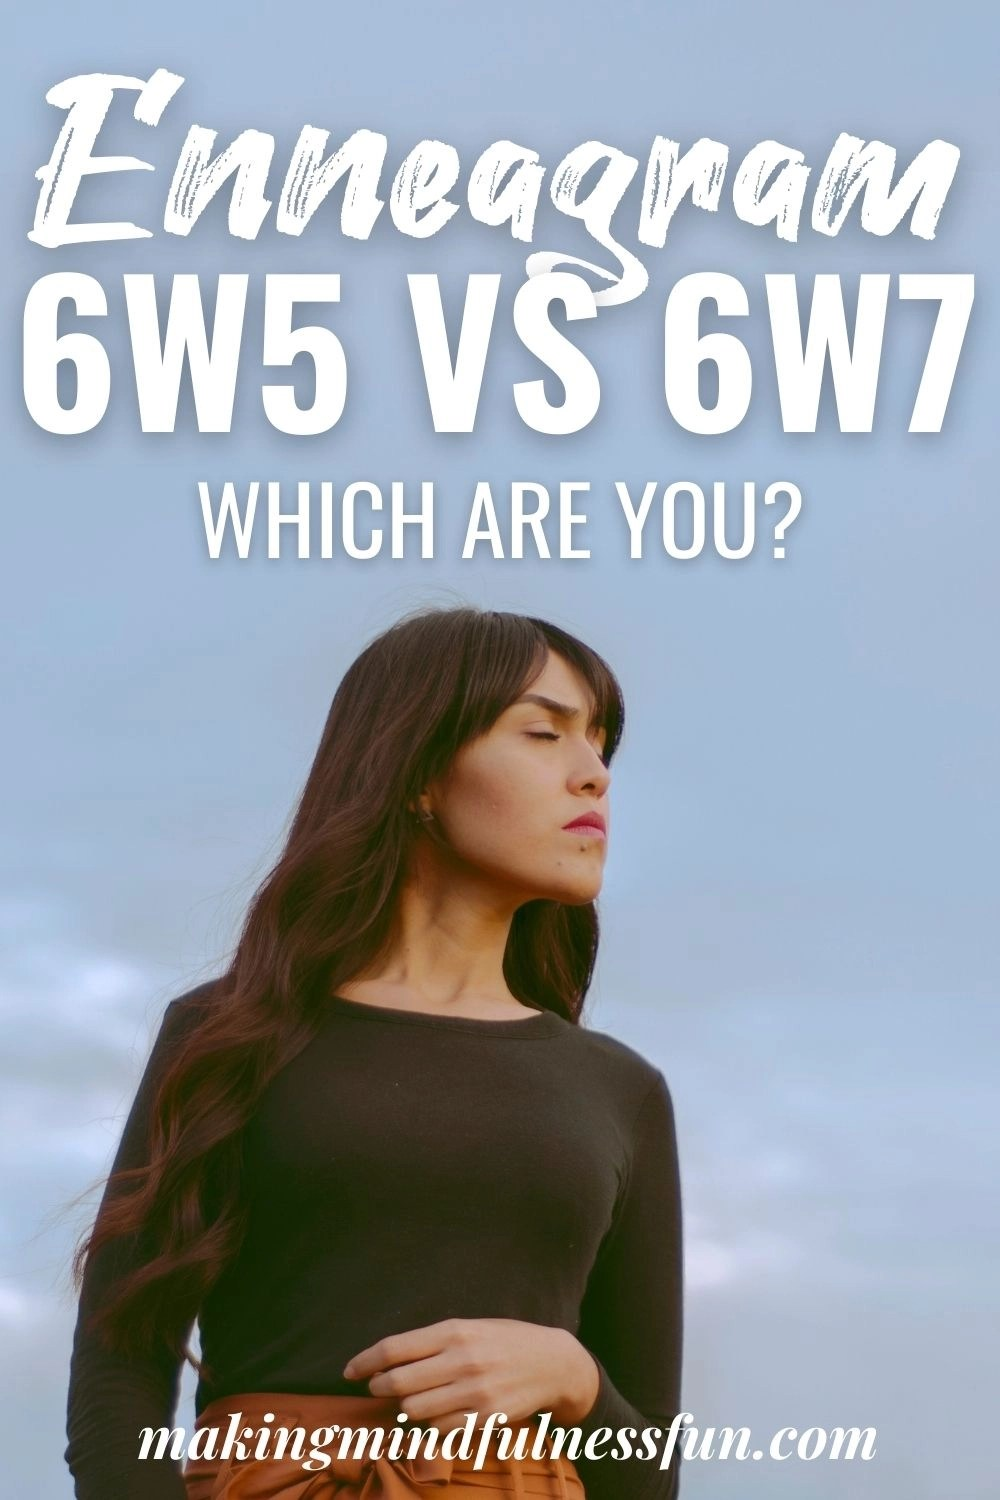 Enneagram 6w5 vs 6w7 which are you